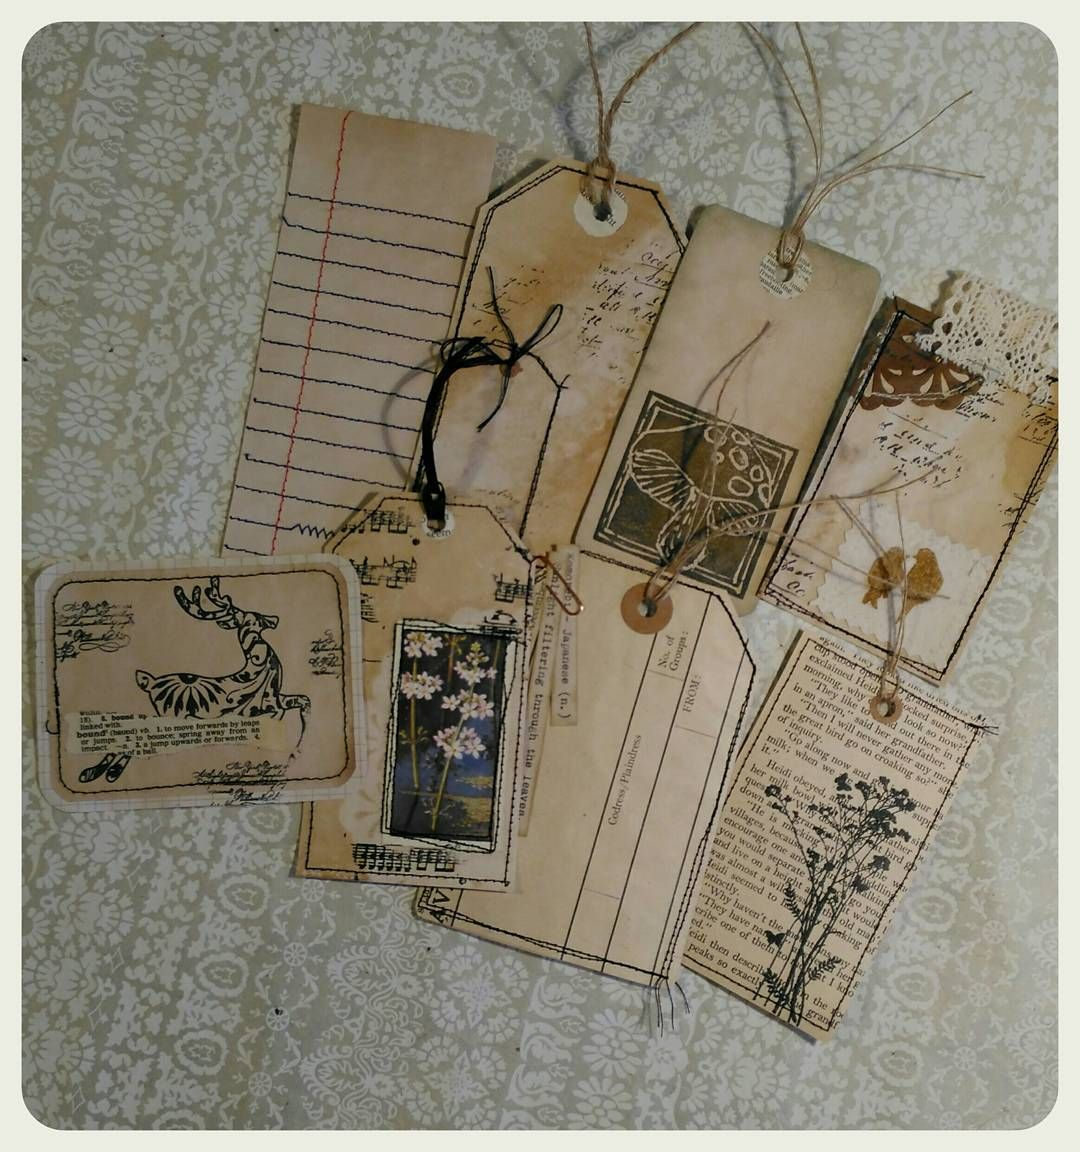 89 Likes 7 Comments Jibid Neary Woolyjibid On Instagram Tags Journalingcards Sets For Sale In My Ets Journal Cards Vintage Junk Journal Handmade Tags